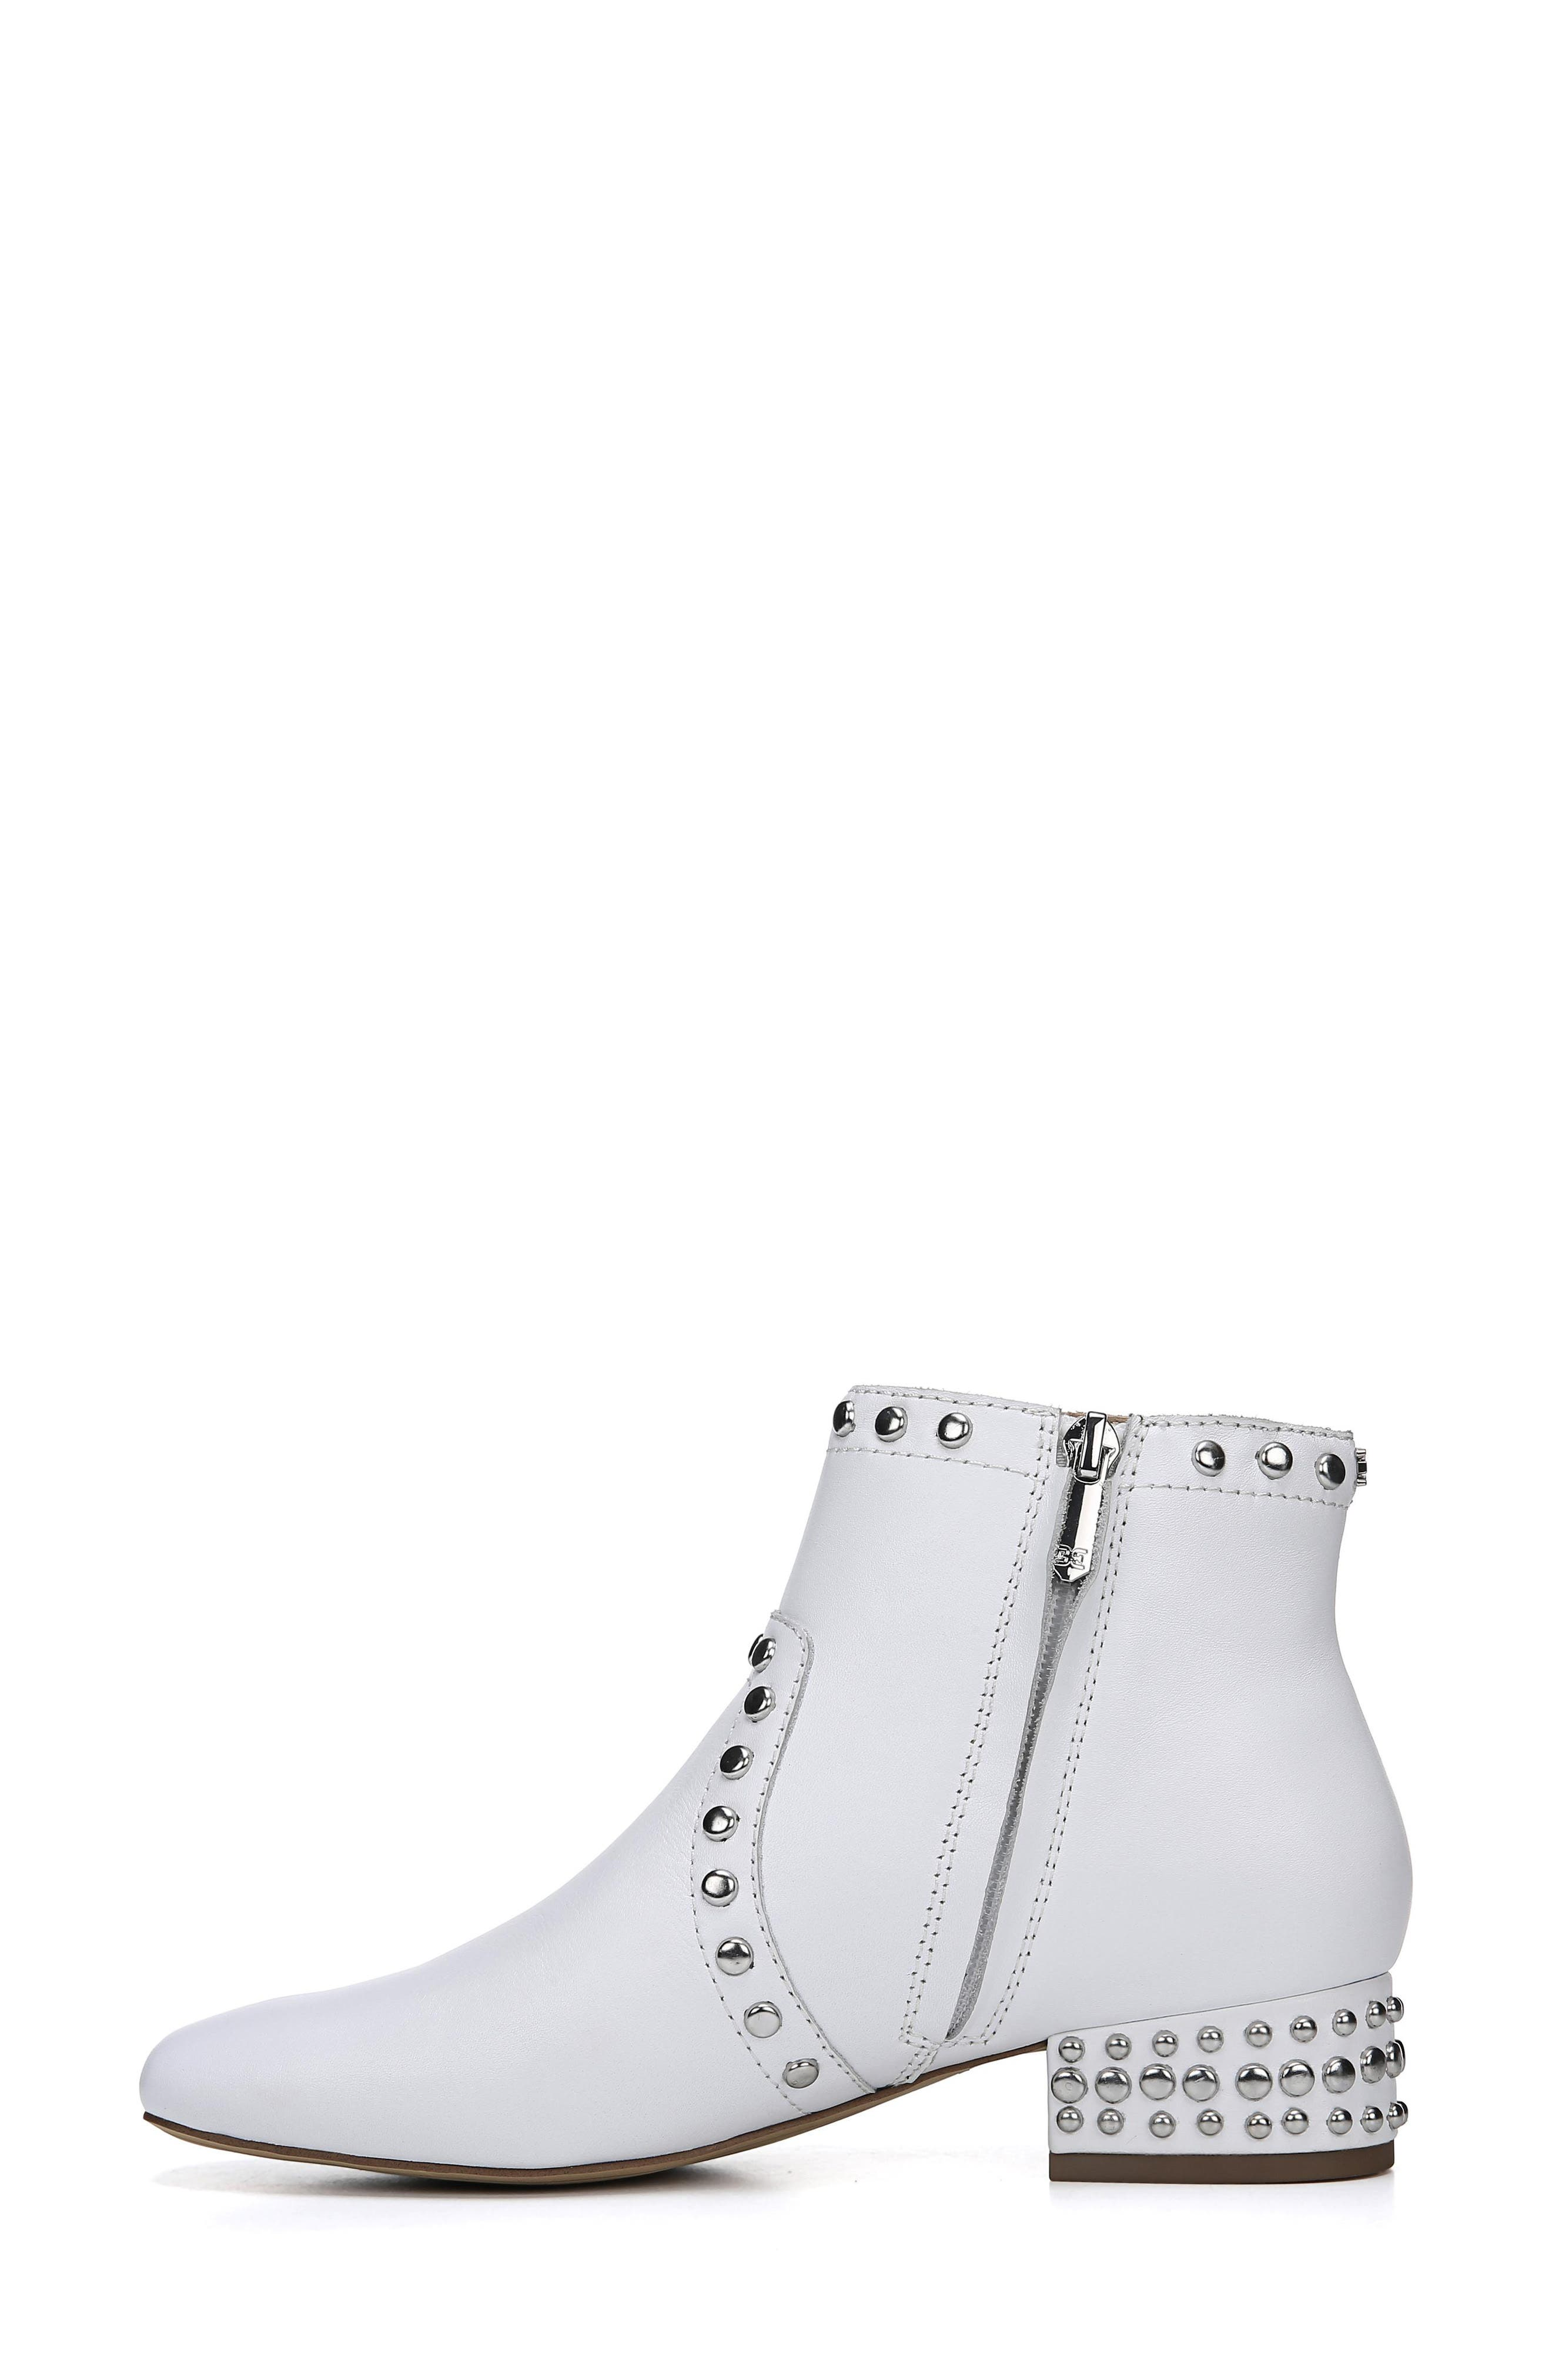 Lorin Studded Bootie,                             Alternate thumbnail 8, color,                             WHITE LEATHER